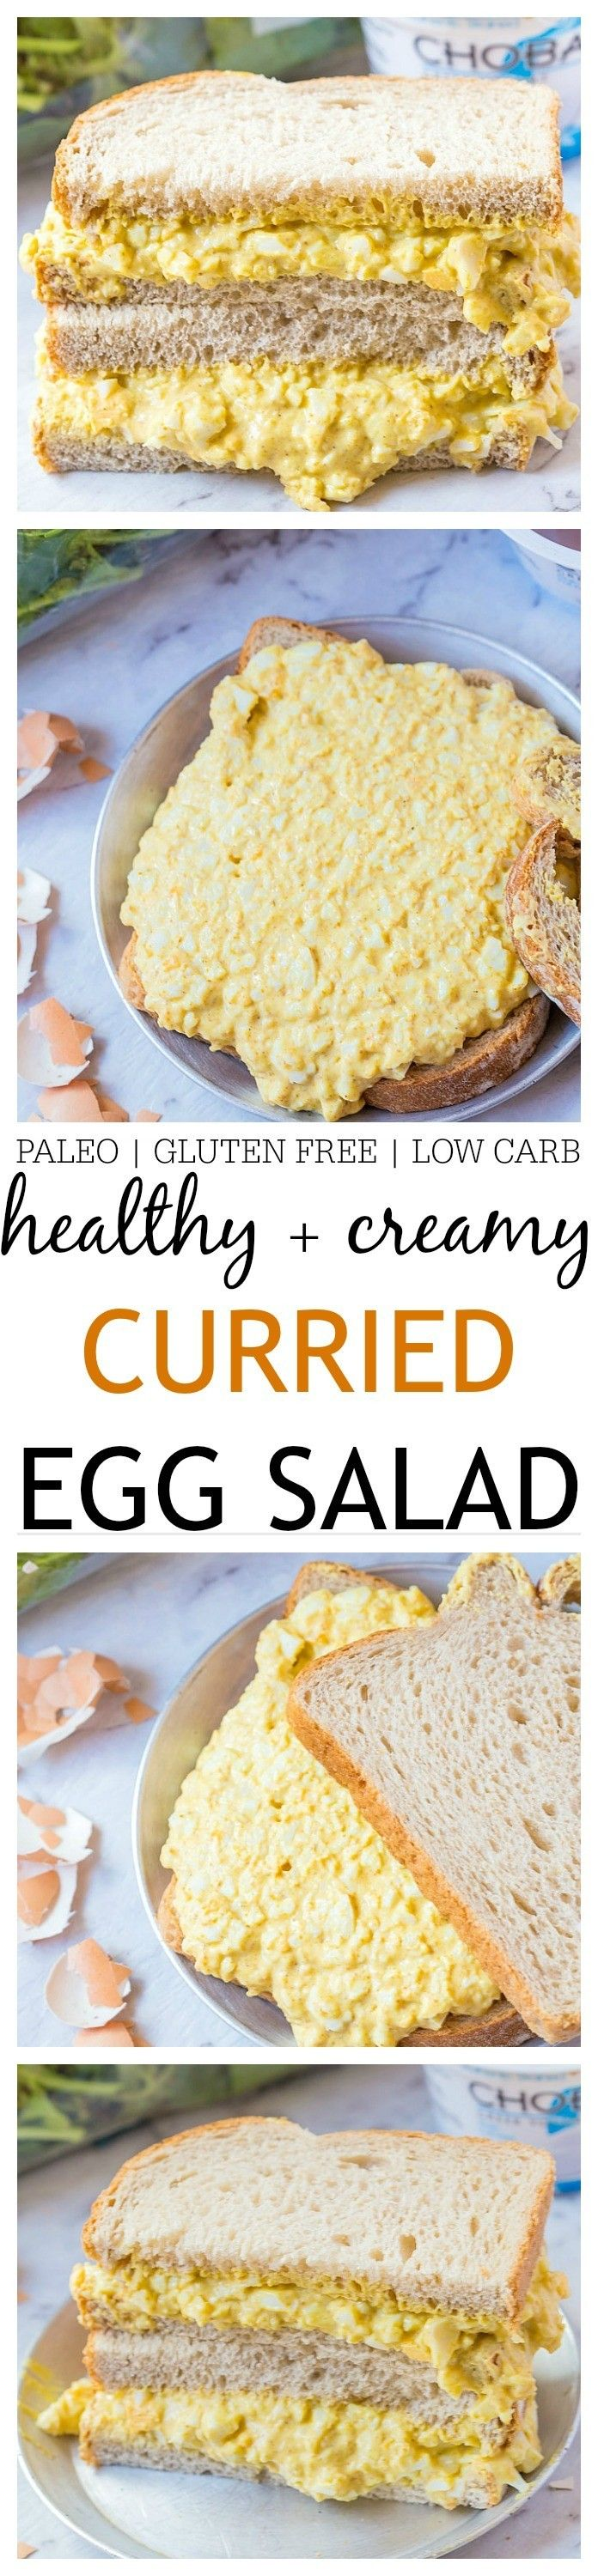 Healthy Creamy Curried Egg Salad- Creamy, easy and ready in no time, this curried egg salad is lightened up and much healthier than classic egg salads! Made with two options, including a paleo friendly one, the original gluten free version uses Greek Yogurt instead of mayonnaise!  @thebigmansworld -thebigmansworld.com